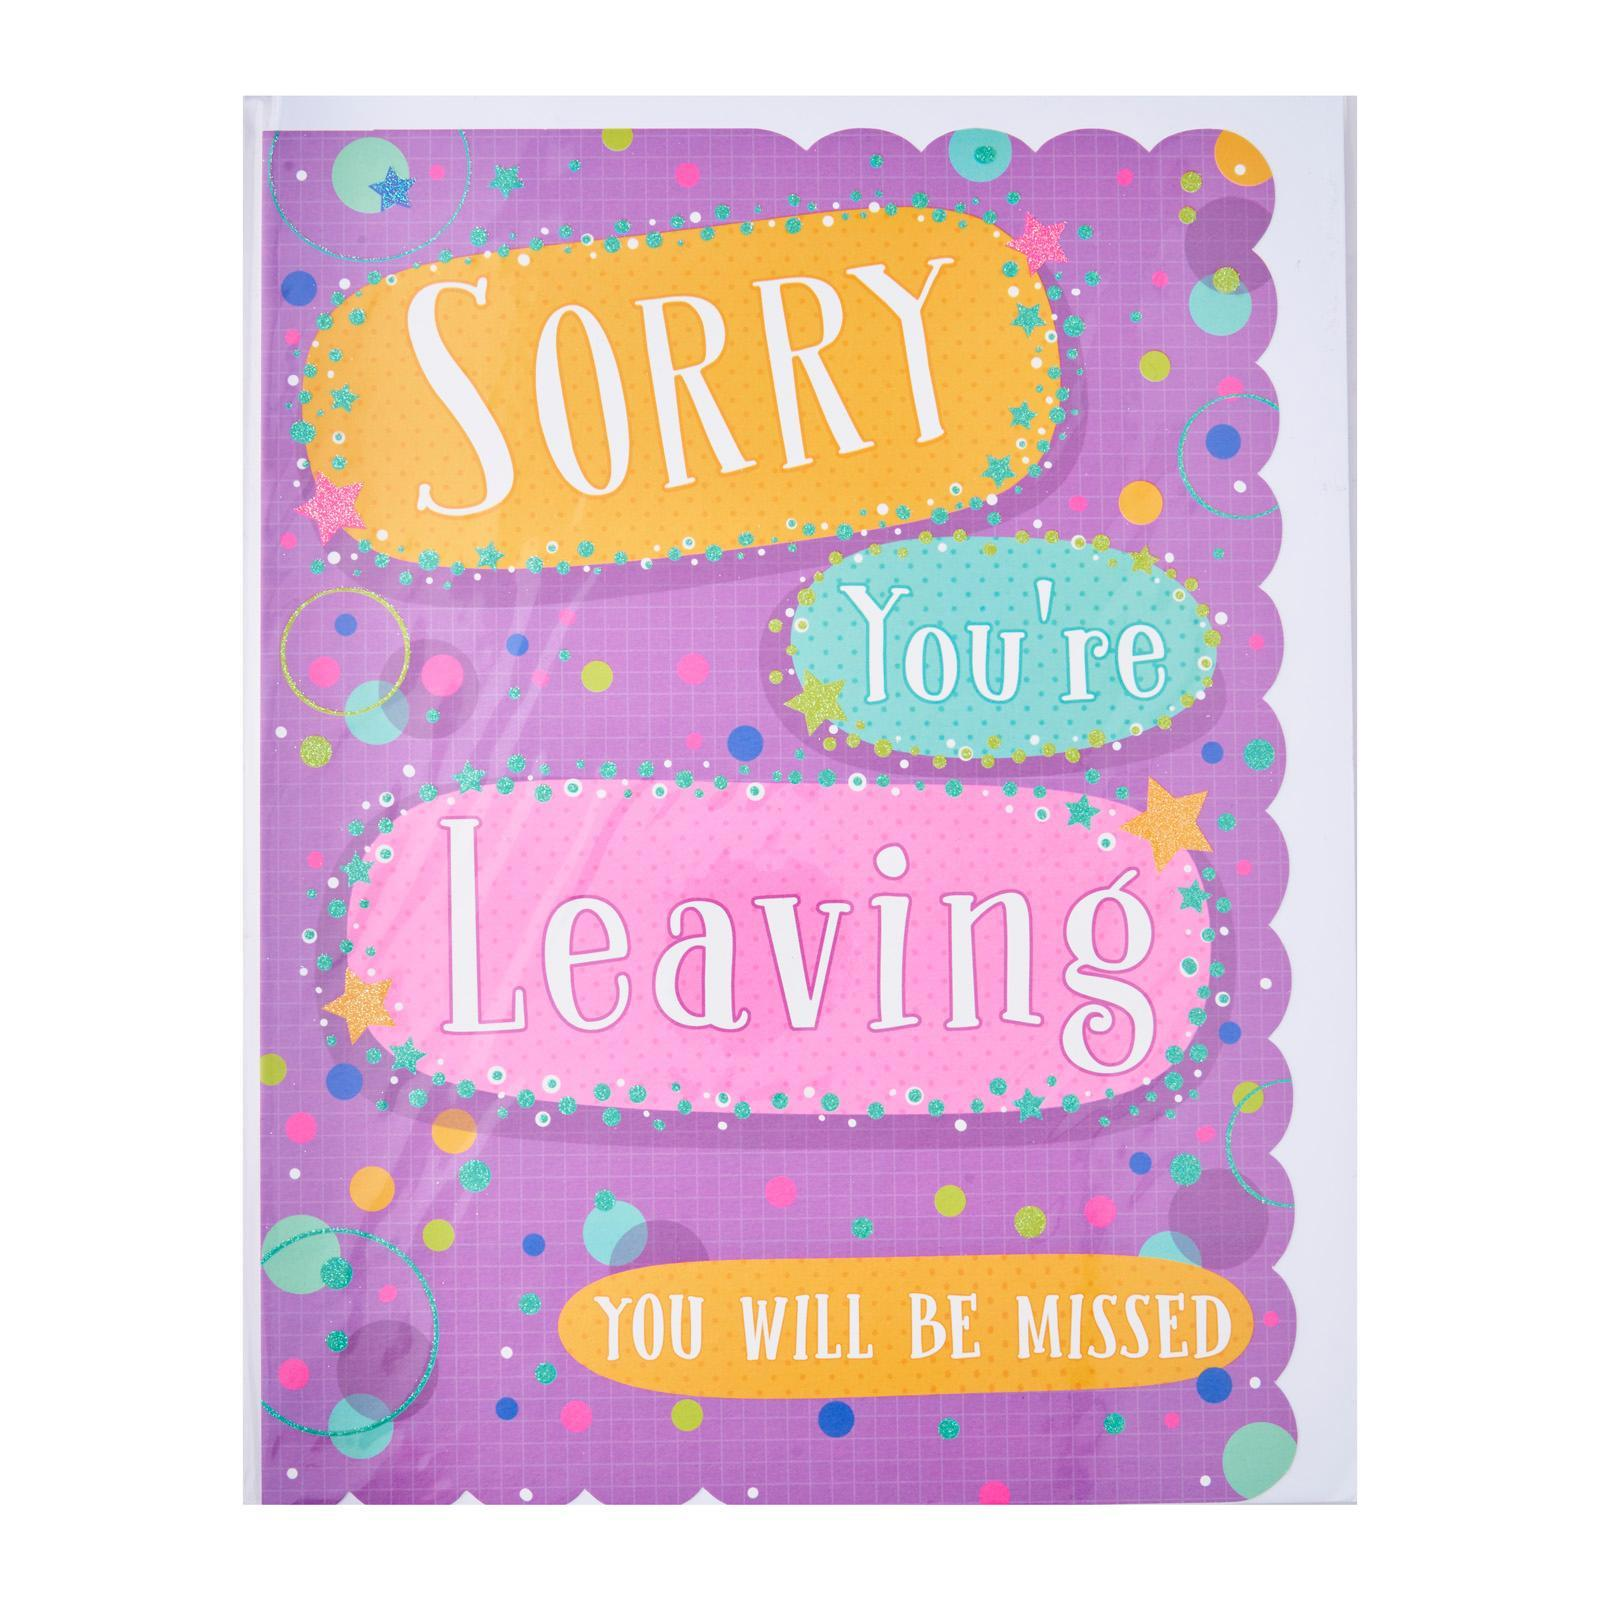 GOLDMARK Farewell Card - Sorry You're Leaving You Will Be Missed